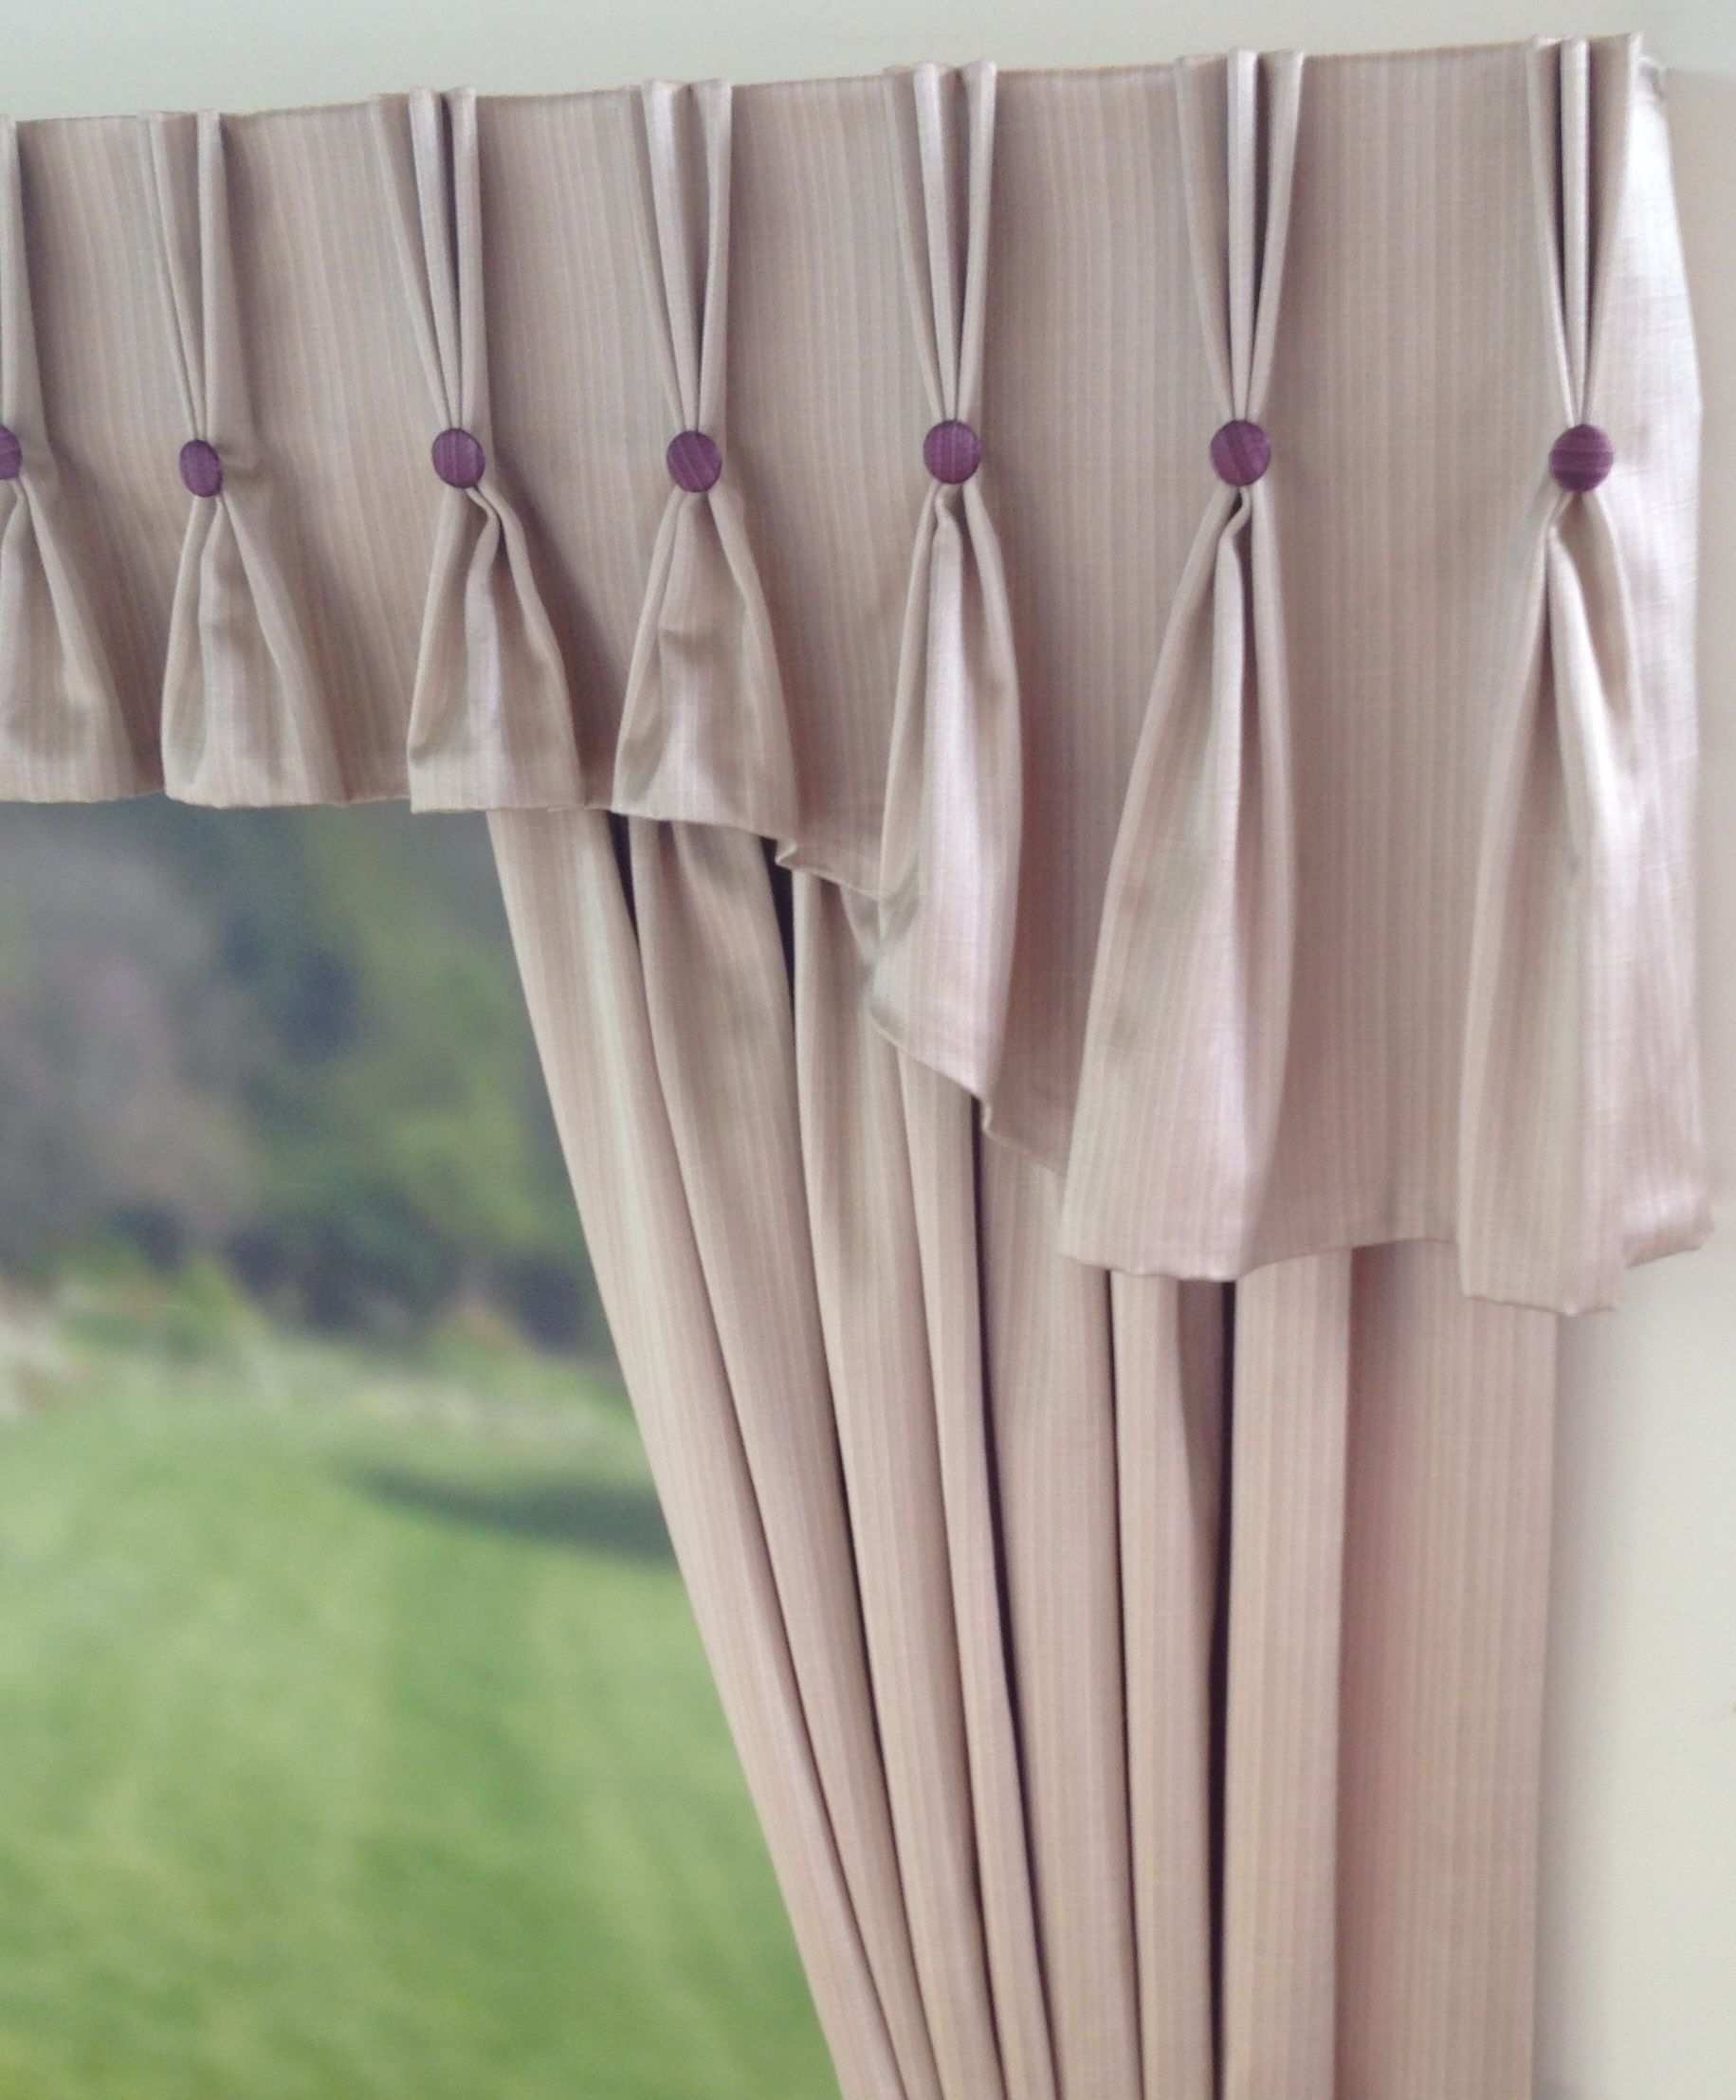 Shaped Pinch Pleat Curtain Valance With Buttons C U R T